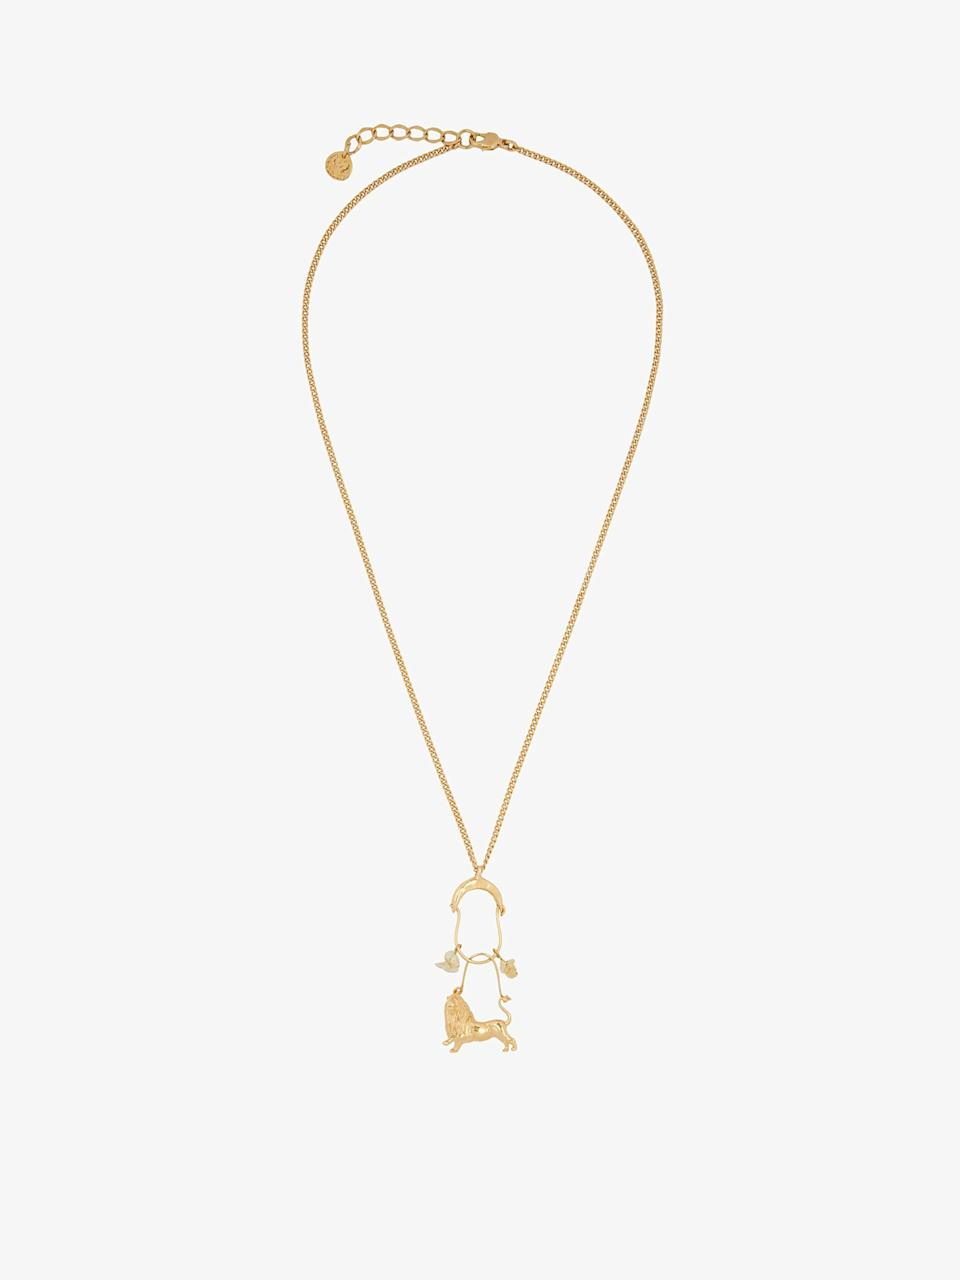 """<p>givenchy.com</p><p><strong>$575.00</strong></p><p><a href=""""https://www.givenchy.com/us/en-US/lion-zodiac-necklace/BF008WF02L-710.html?cgid=JEWELS_W#start=1"""" rel=""""nofollow noopener"""" target=""""_blank"""" data-ylk=""""slk:Shop Now"""" class=""""link rapid-noclick-resp"""">Shop Now</a></p><p>The latest iteration of Givenchy's oversized zodiac jewelry (first introduced by Claire Waight Keller in Fall 2018) includes charm pendants that double as works of art. Here, a piece certainly befitting any Leo. </p>"""